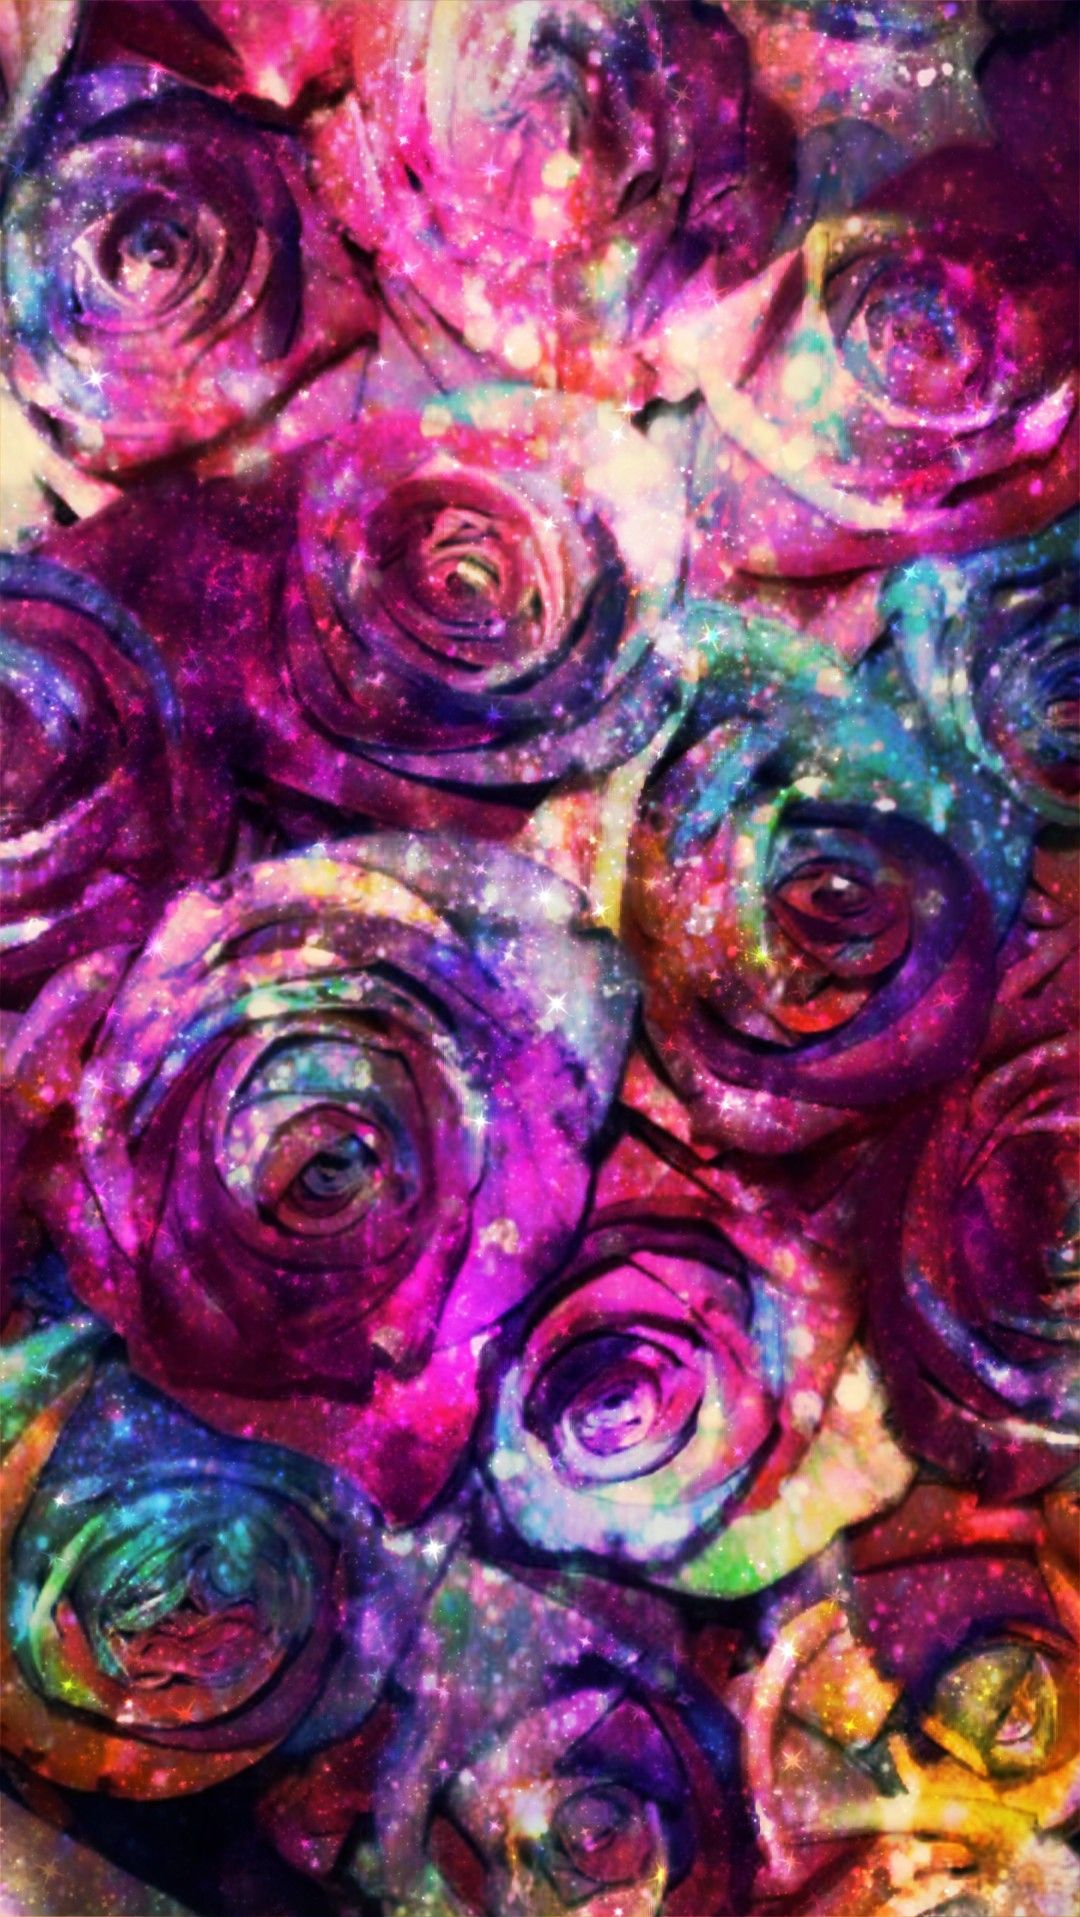 Galaxy Rainbow Roses Made By Me Purple Glitter Sparkles Galaxy Colorful Roses Flowers Floral Backgrounds Rainbow Roses Rose Wallpaper Colorful Roses